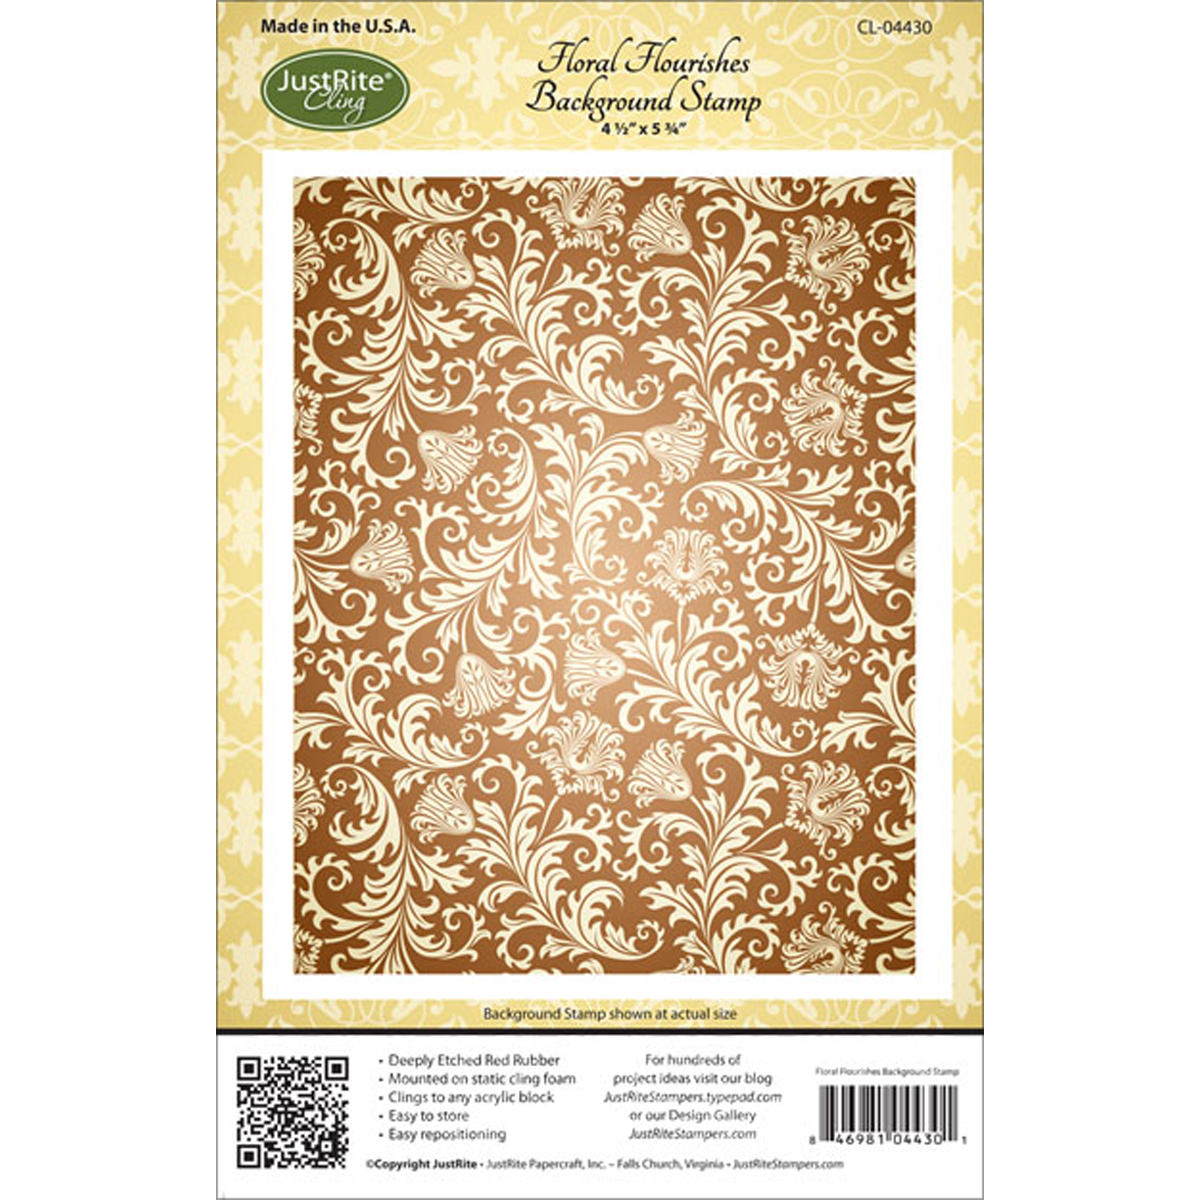 "JustRite Papercraft Cling Background Stamp 4.5""X5.75""-Floral Flourishes"